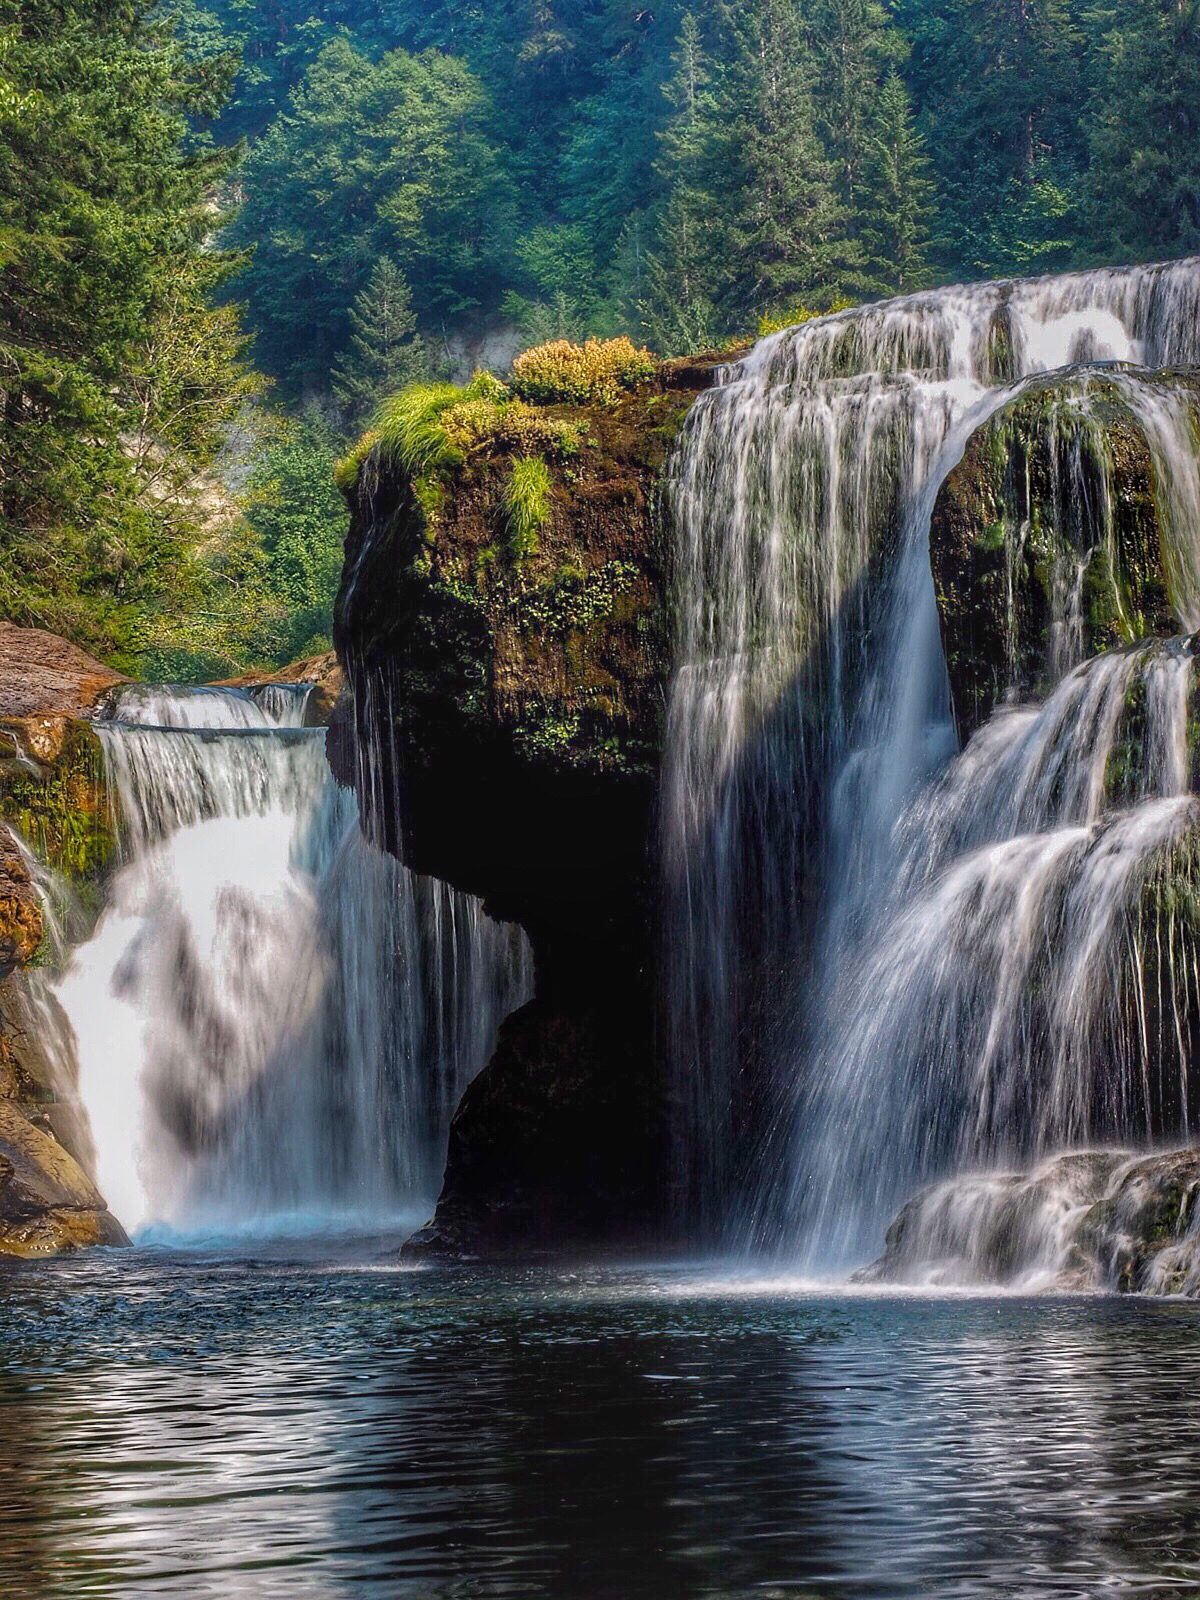 Waterfall in the Cascades